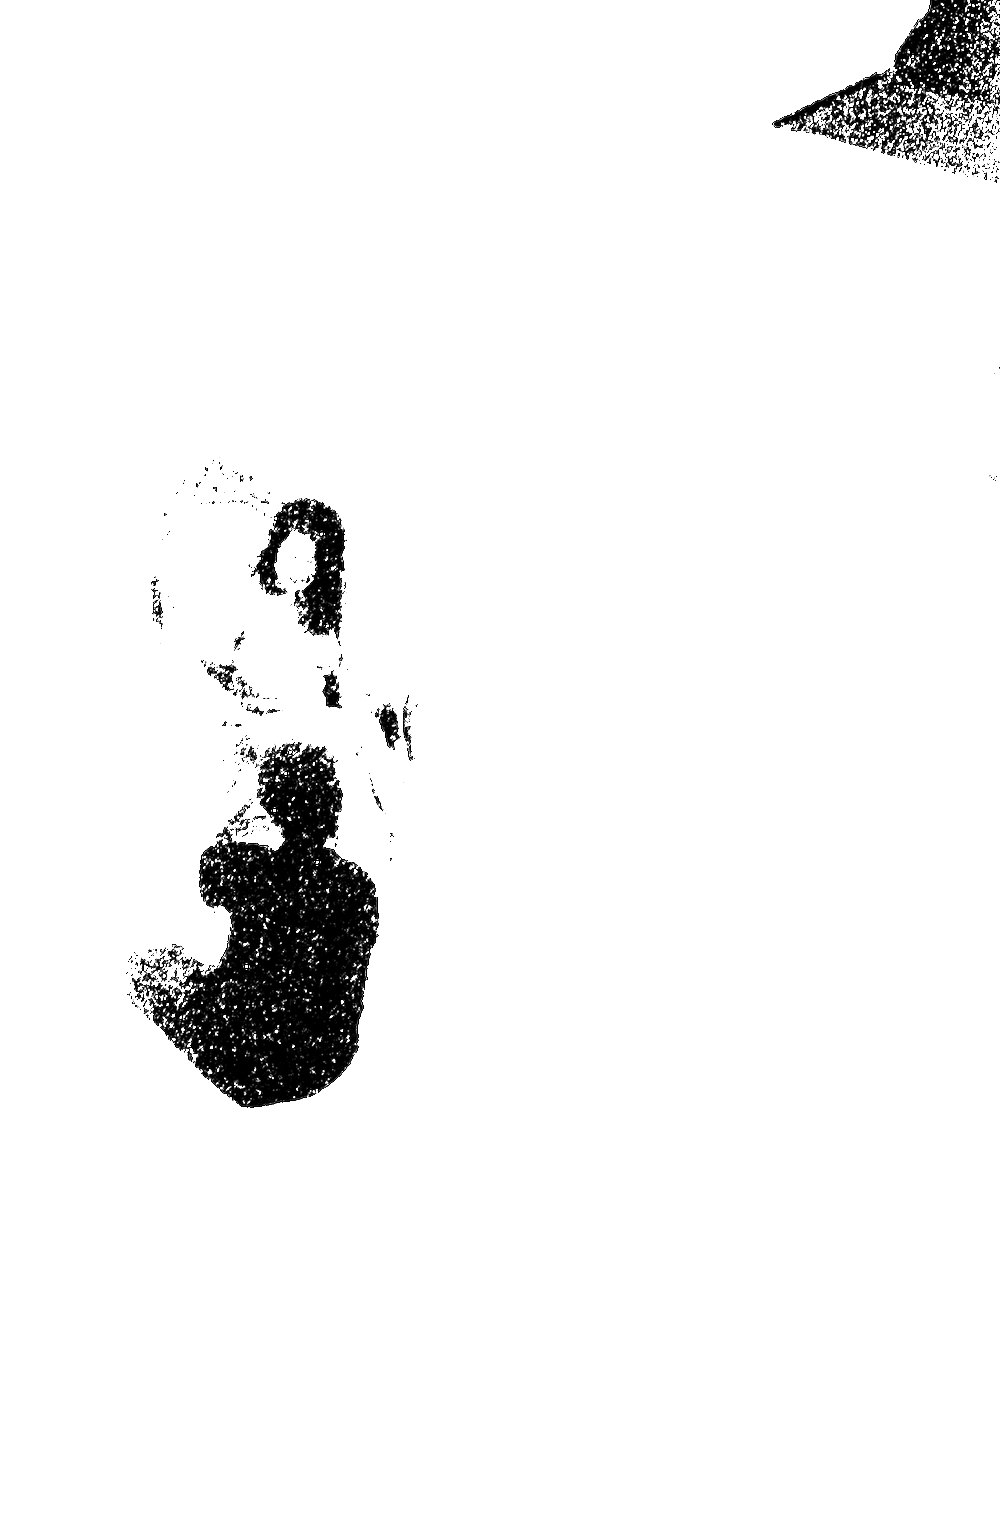 07_2018_105.png